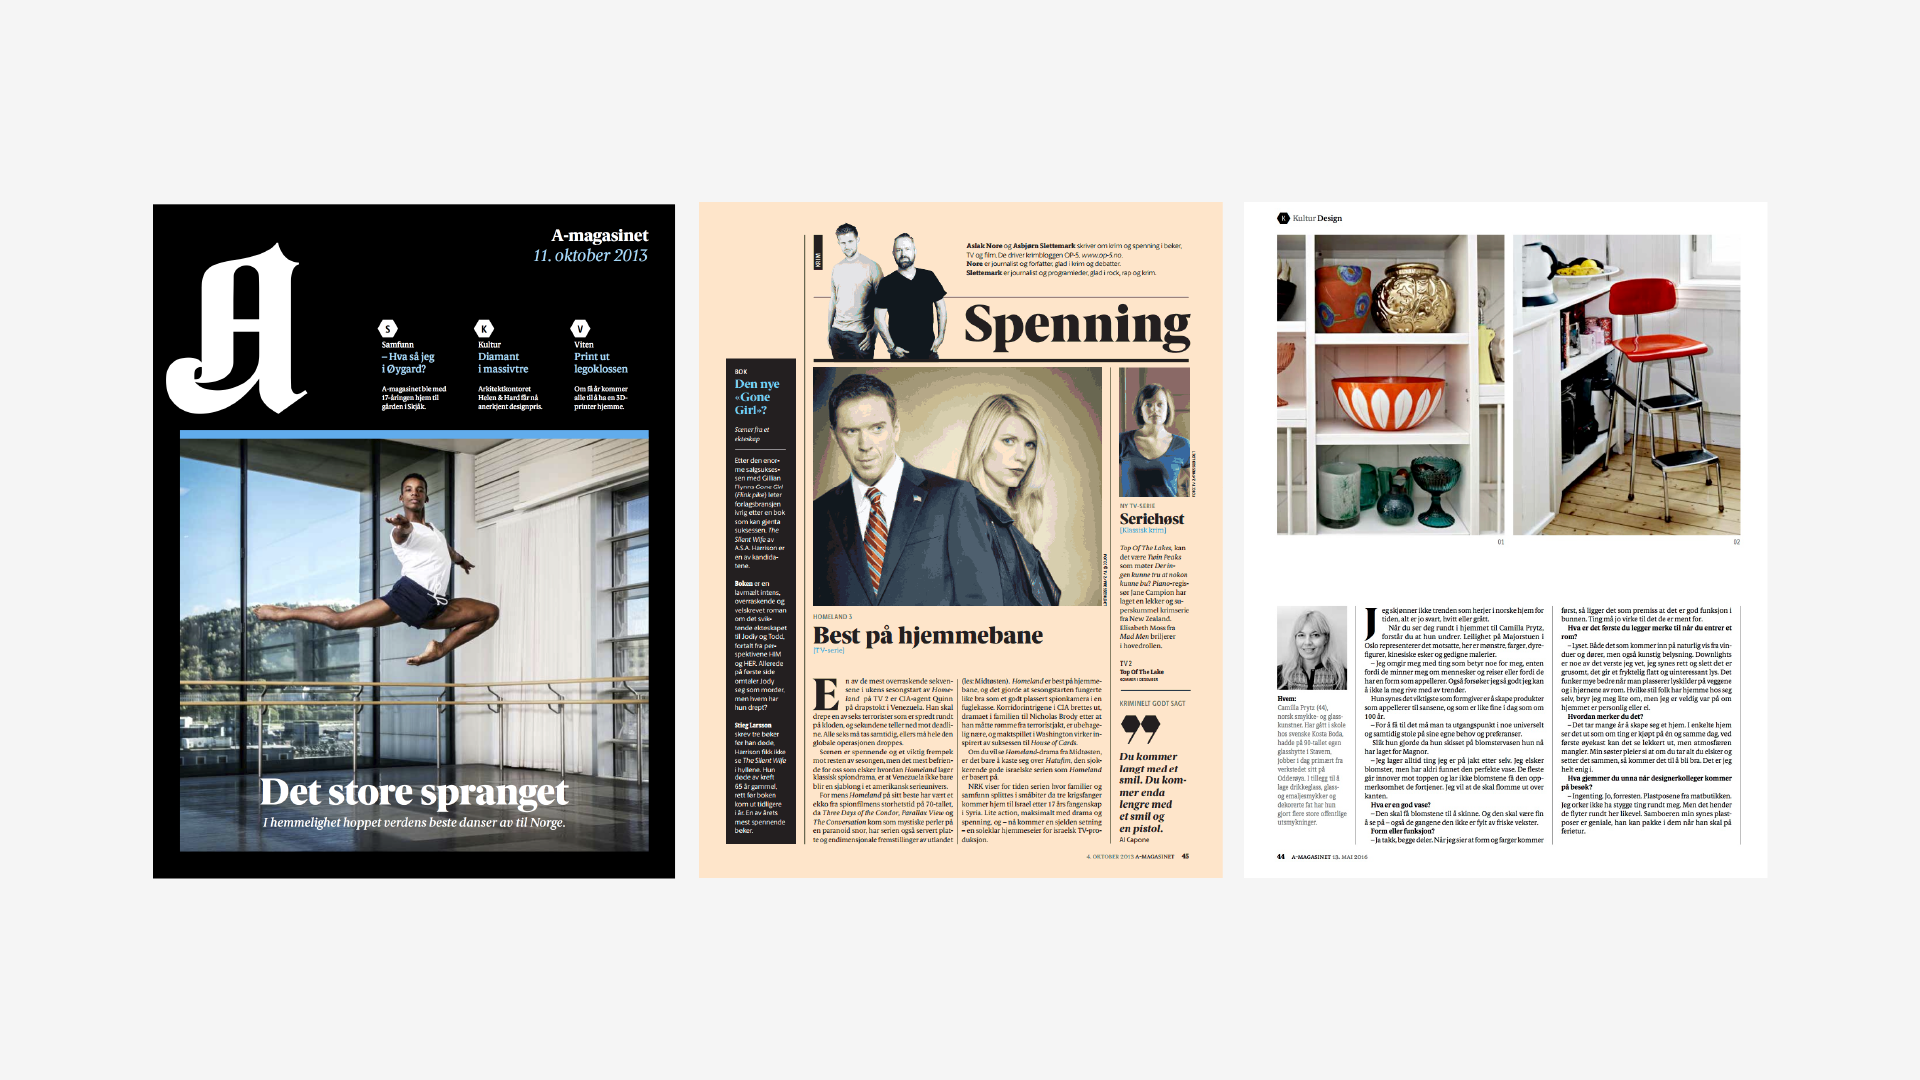 Typical pages from the print magazine.